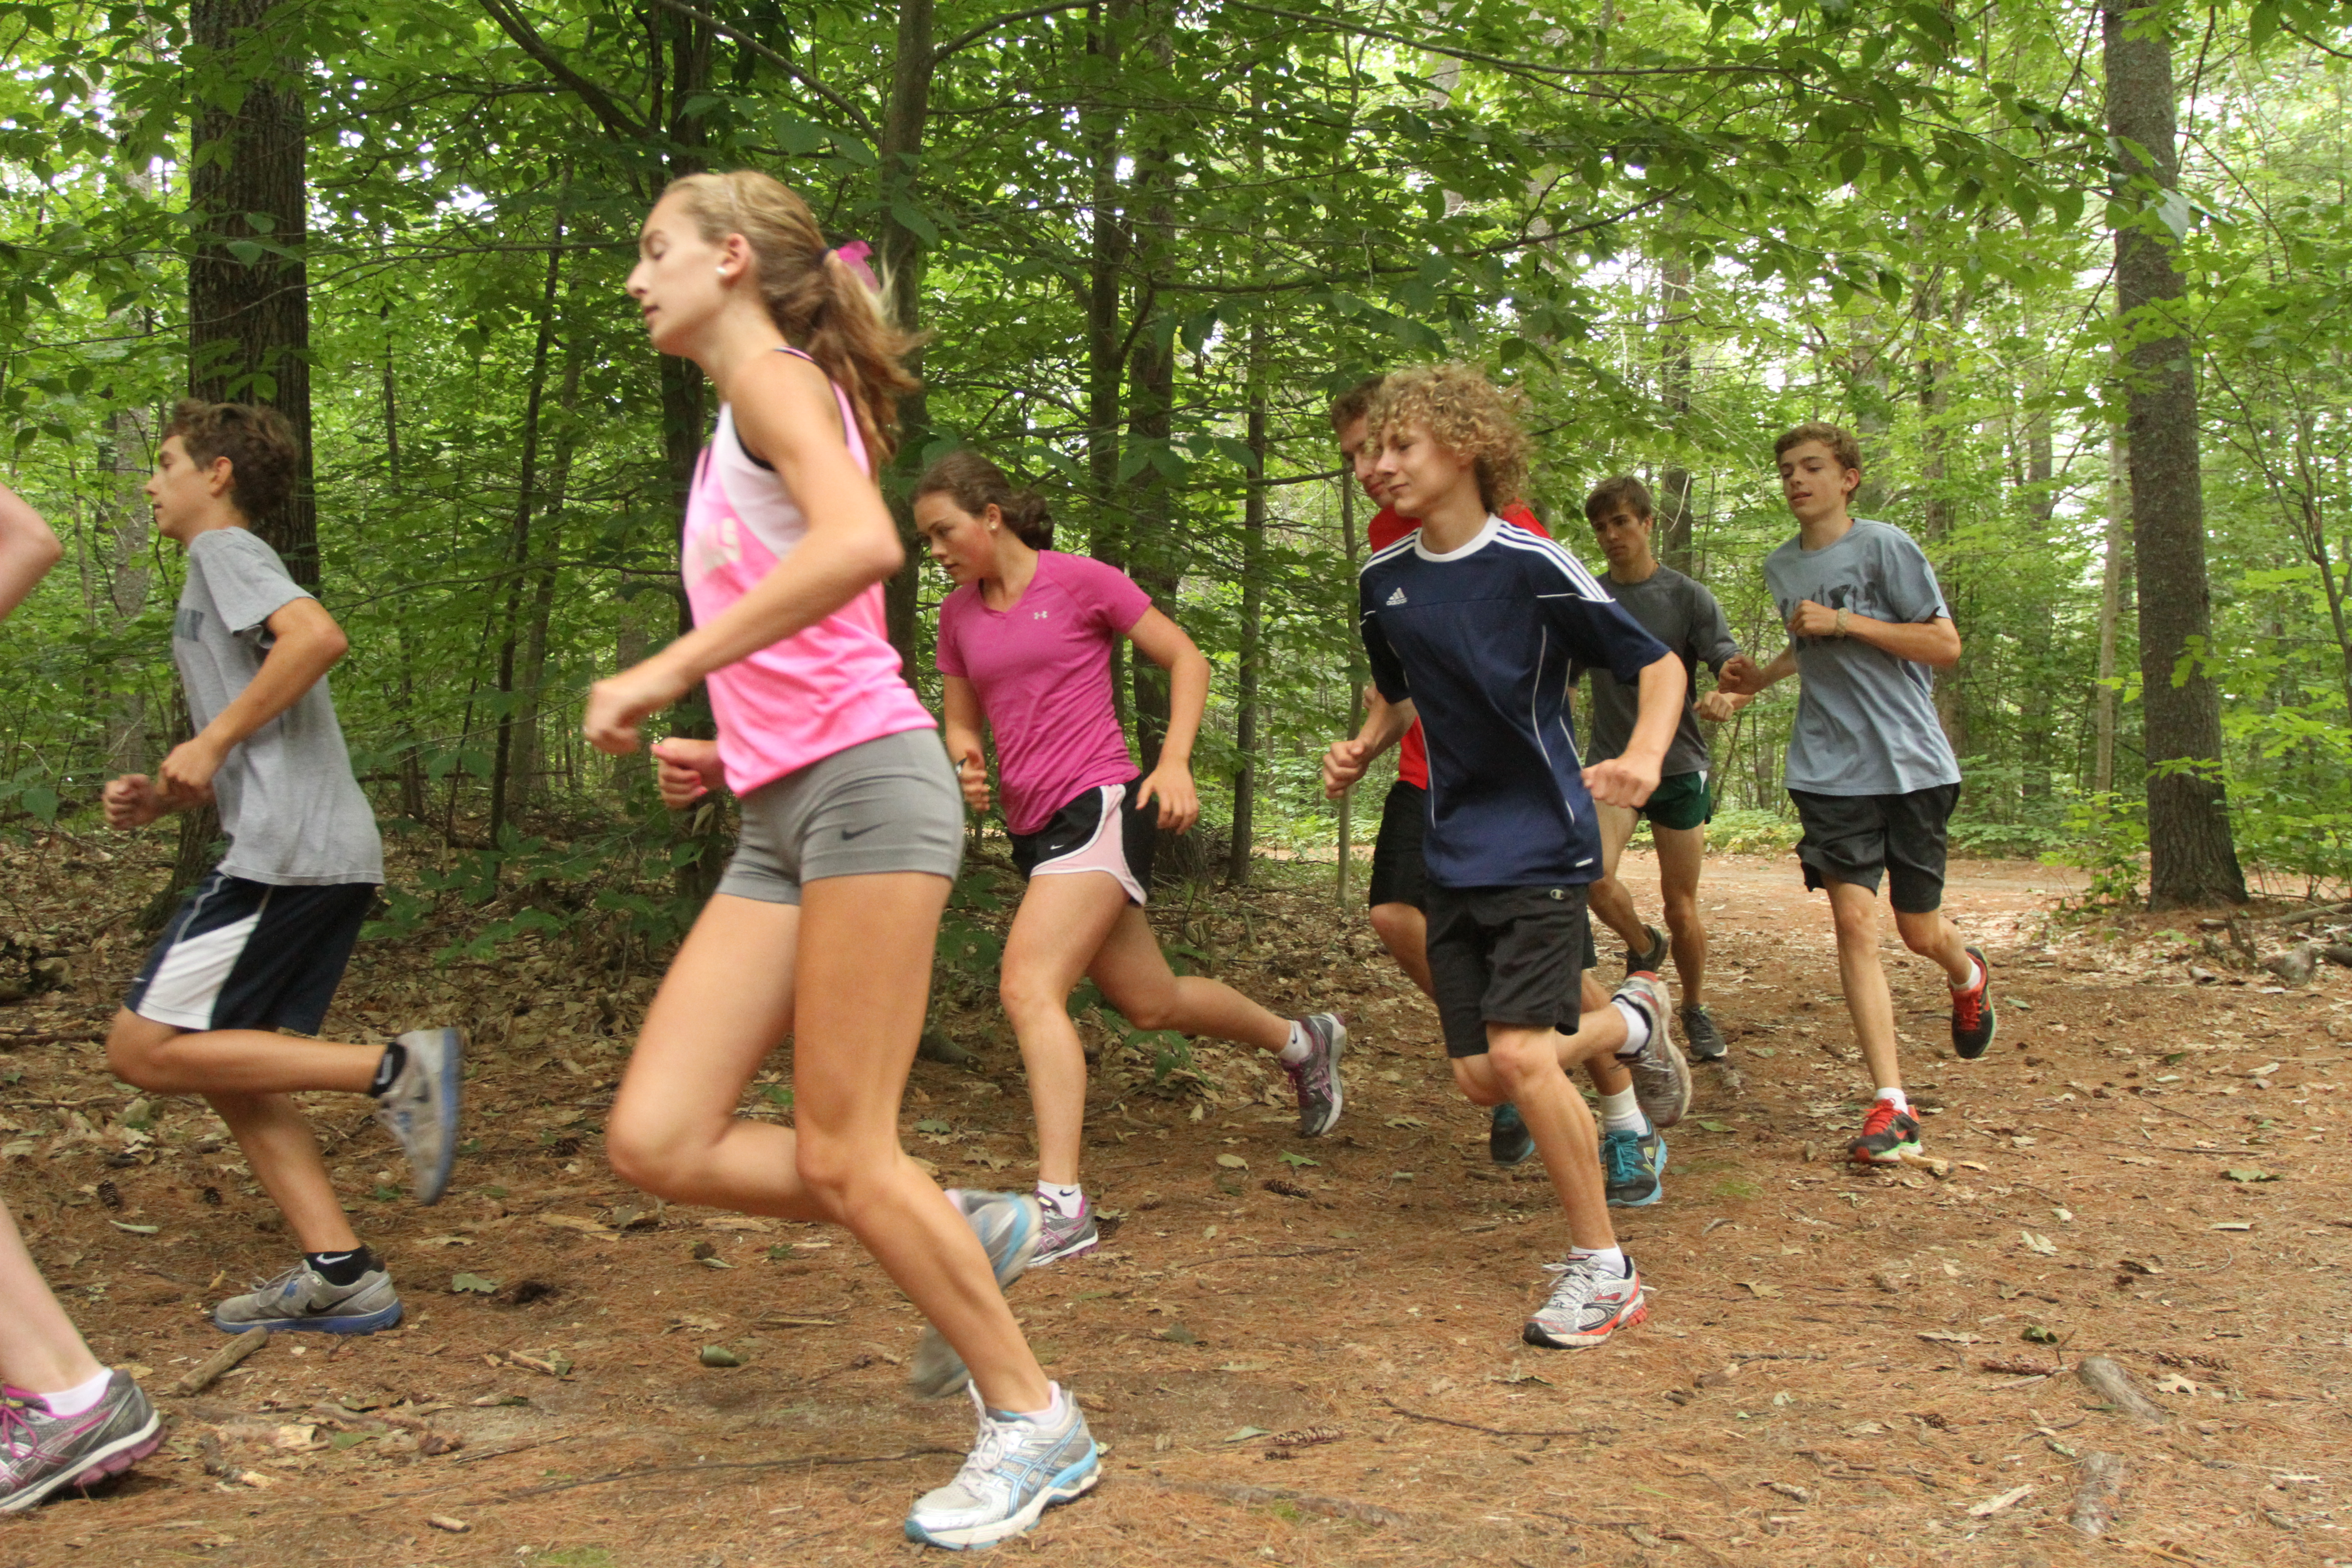 Summer Program - Cross Country | Slovenski Camps: Maine Cross Country Running Camp